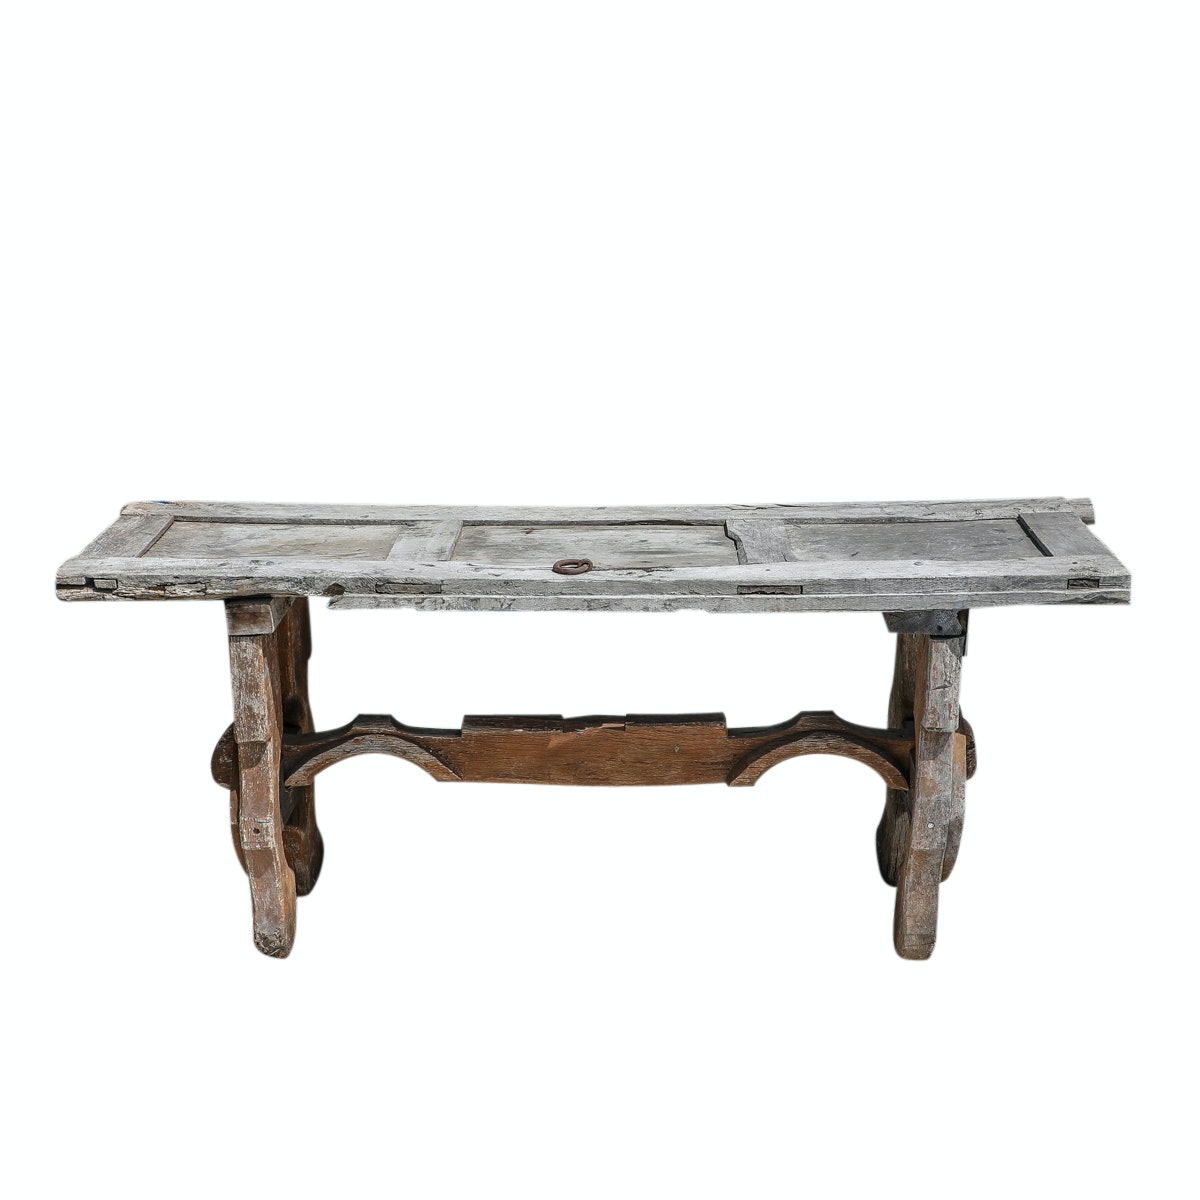 Handmade Salvaged Wood Outdoor Table